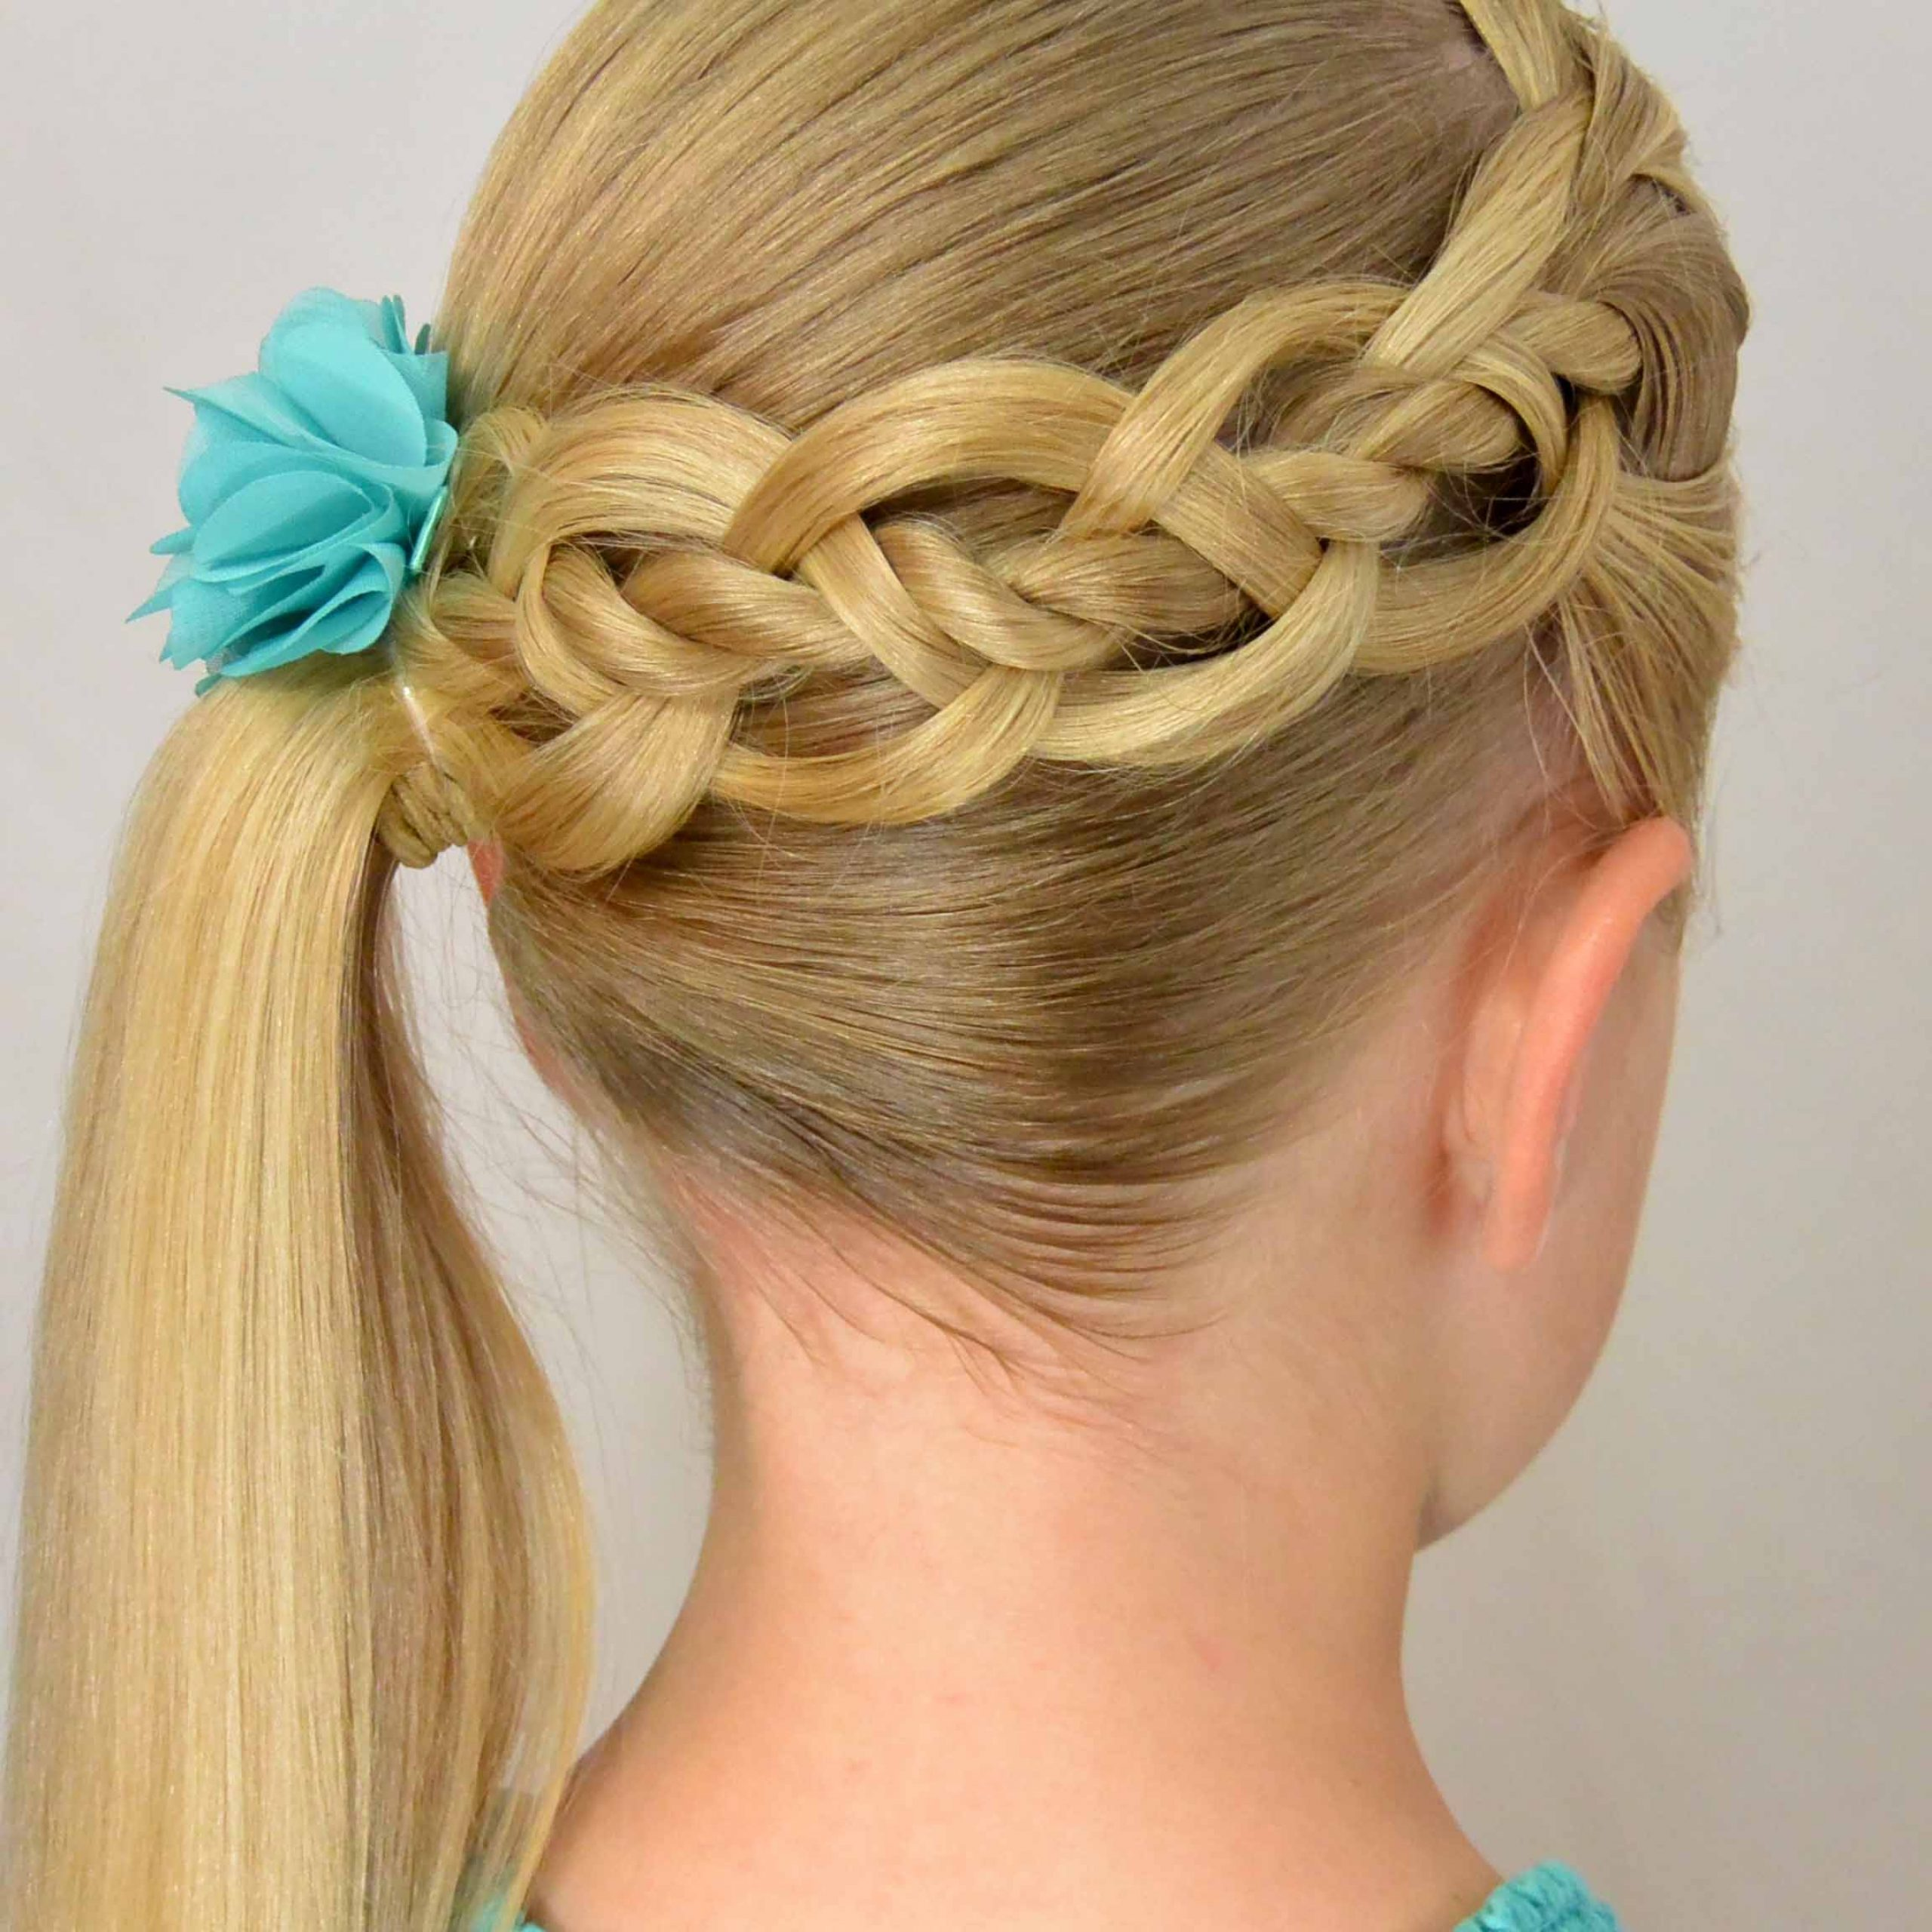 2020 Four Strand Braid Hairstyles Throughout 4 Strand Braid With A Twist – Babes In Hairland (View 8 of 20)